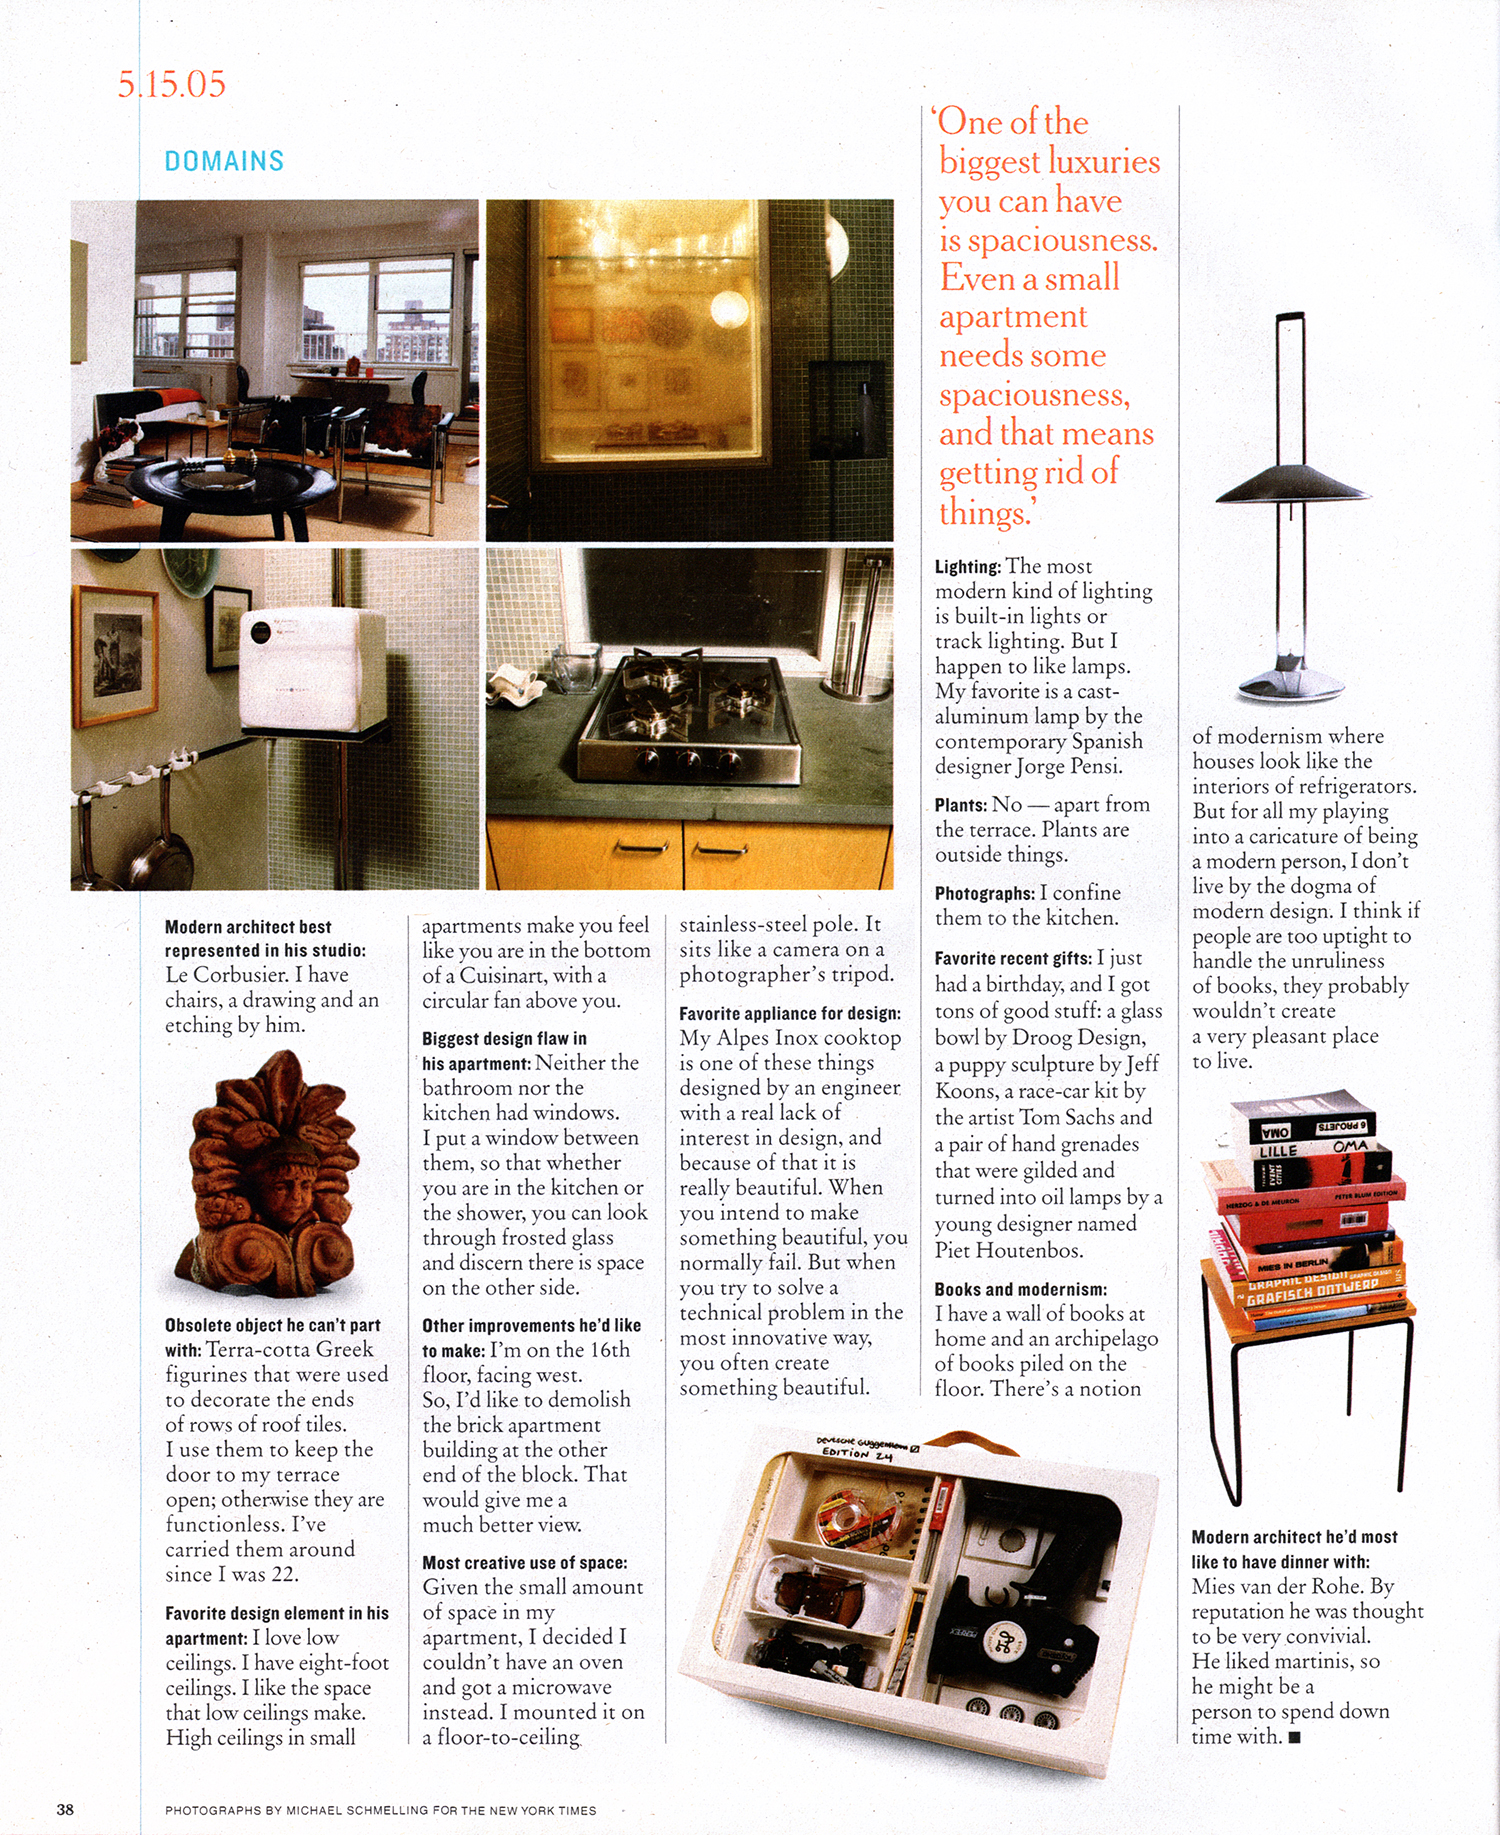 Terrence Riley mentions Piet Houtenbos' gilded Hand Grenade Oil Lamps as one of his favorite recent gifts.